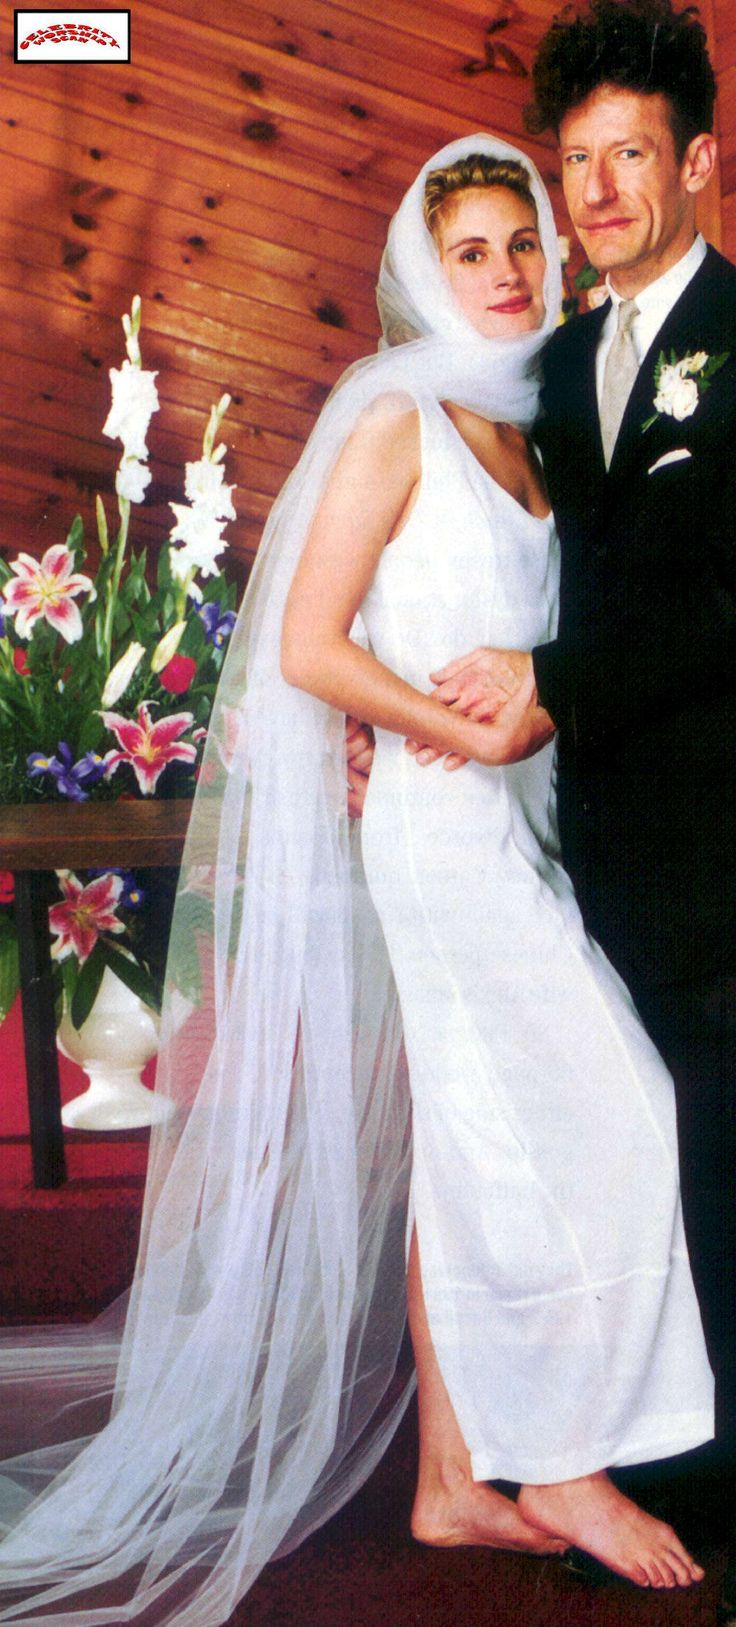 The barefoot bride Julia Roberts and 1st husband Lyle Lovett; later divorced.